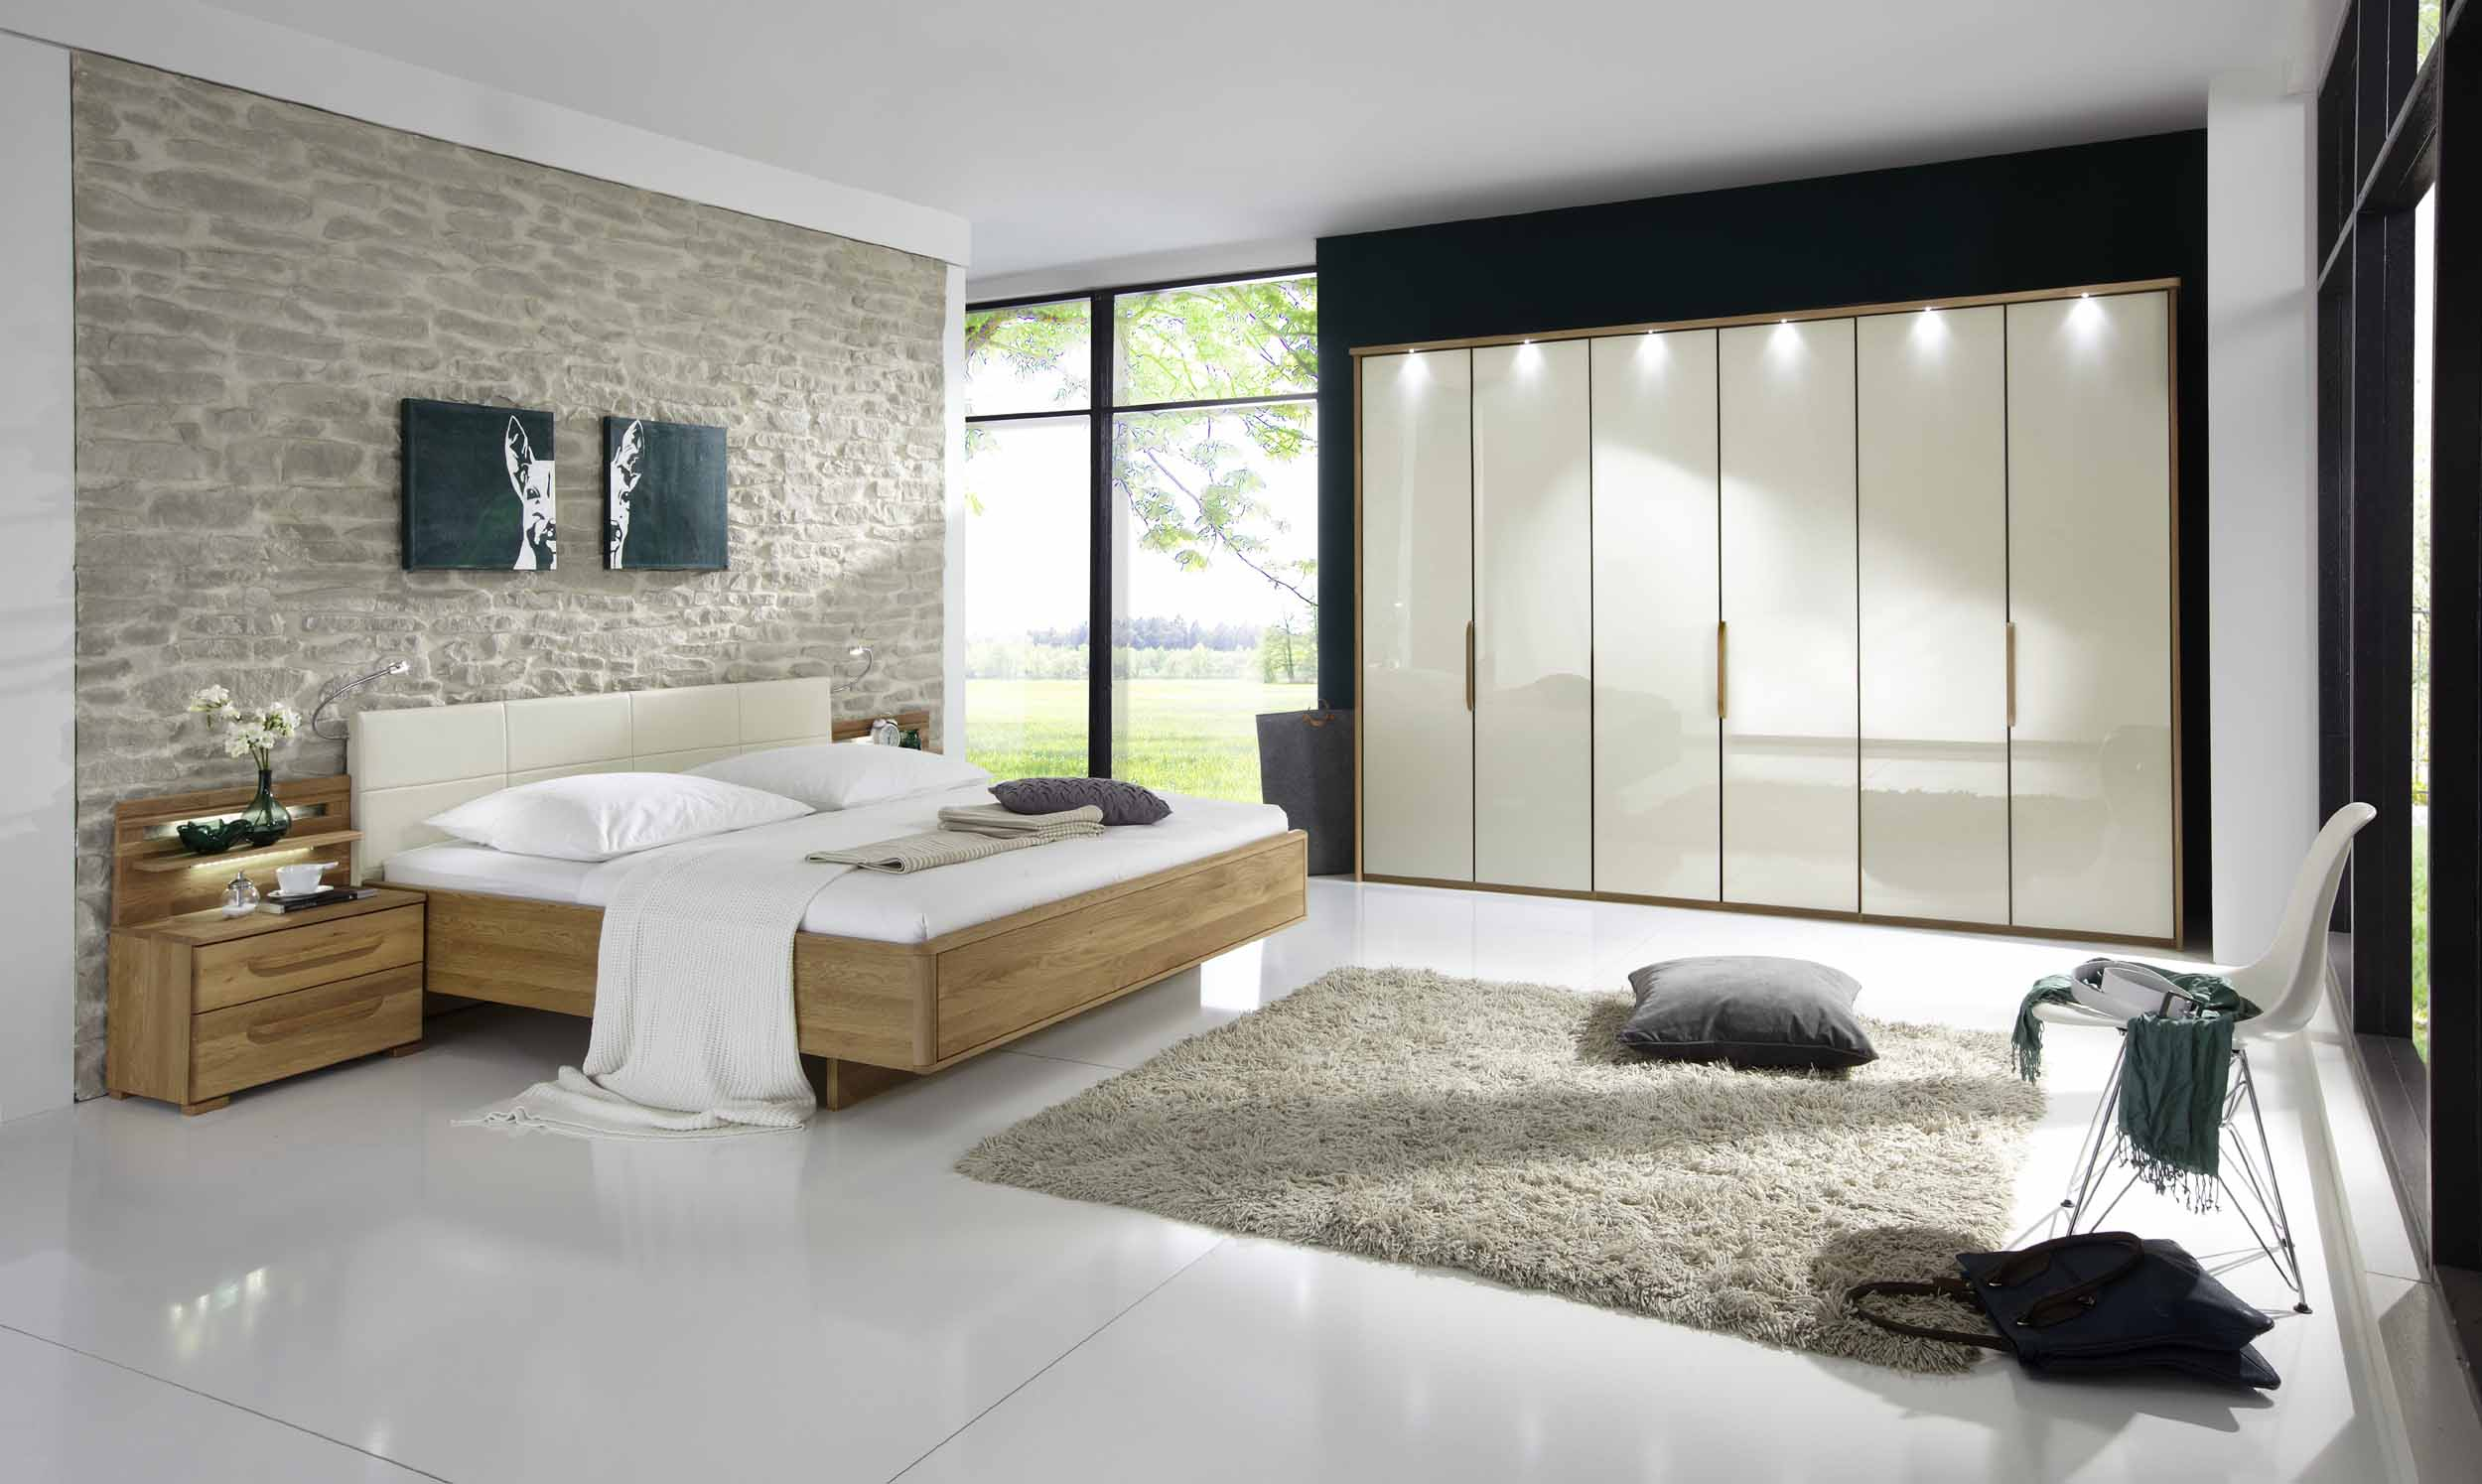 schlafzimmer torino eiche glas magnolie g nstig massiva m. Black Bedroom Furniture Sets. Home Design Ideas